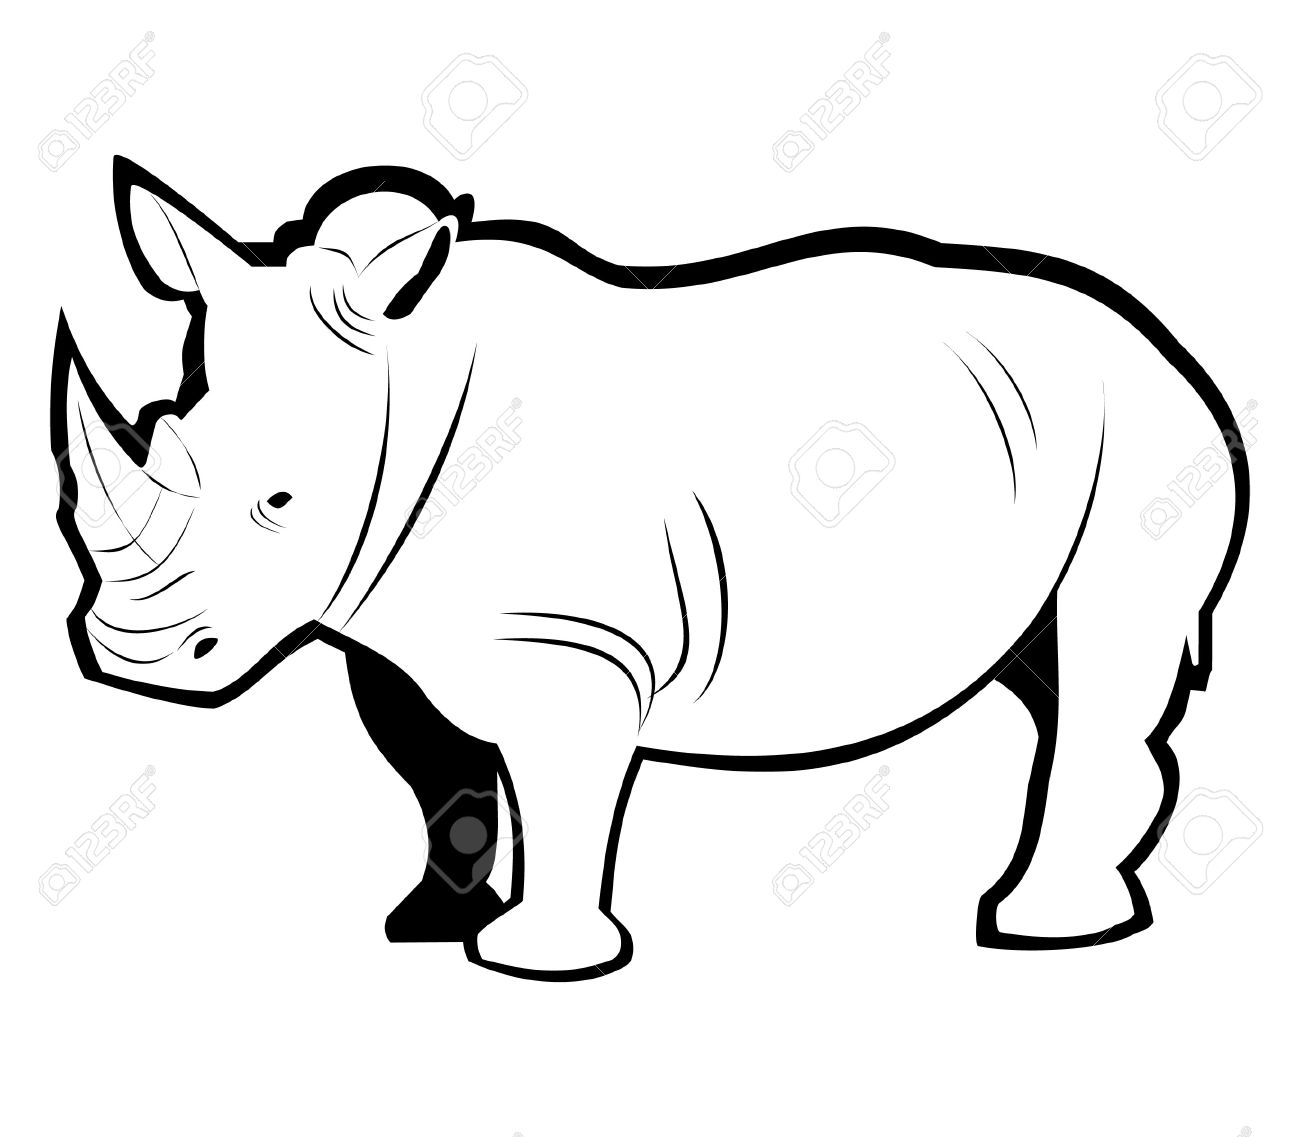 rhino outline royalty free cliparts vectors and stock illustration